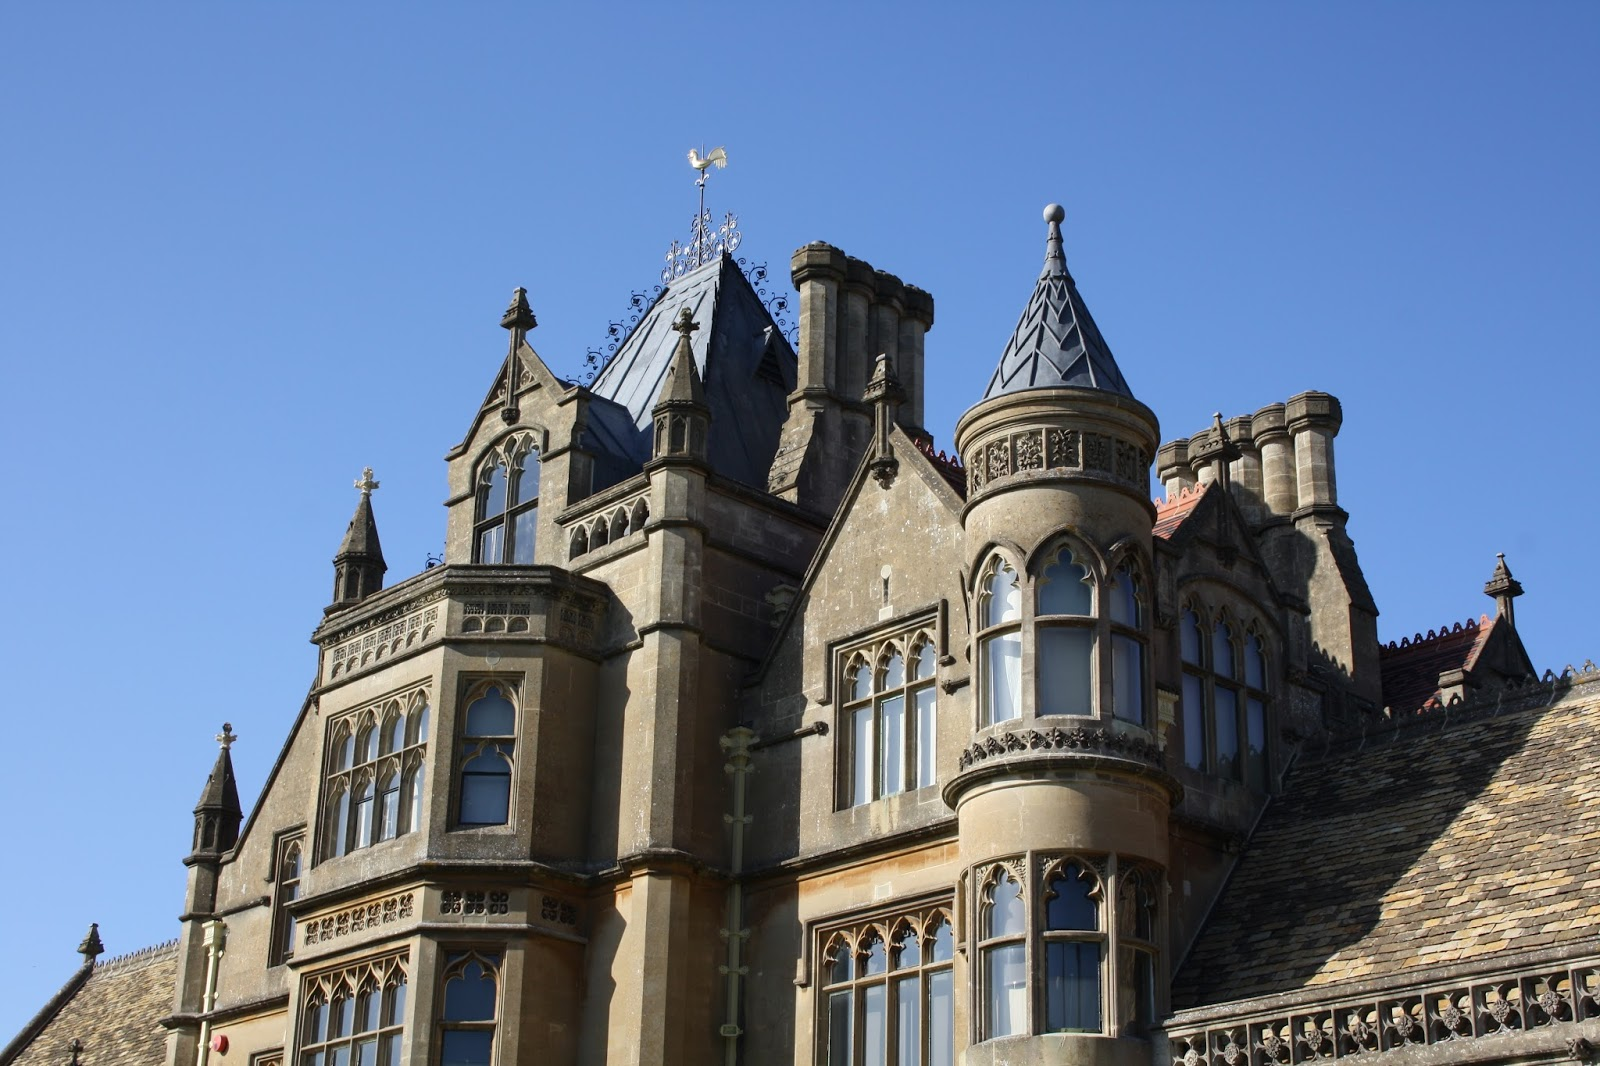 The Turrets Chimney Pots And Weathercocks Of Tyntesfield House